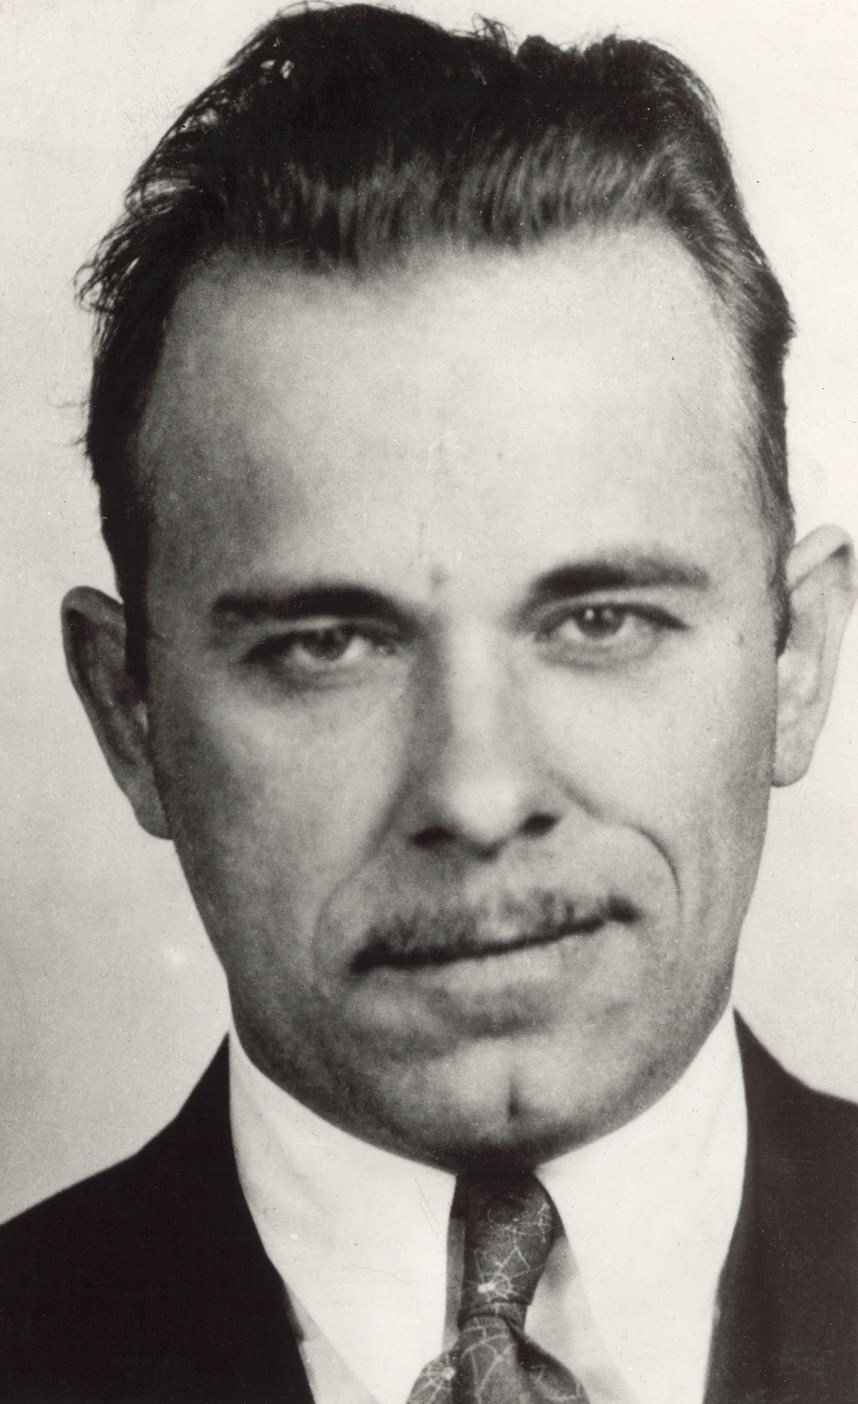 John Dillinger's FBI photo.